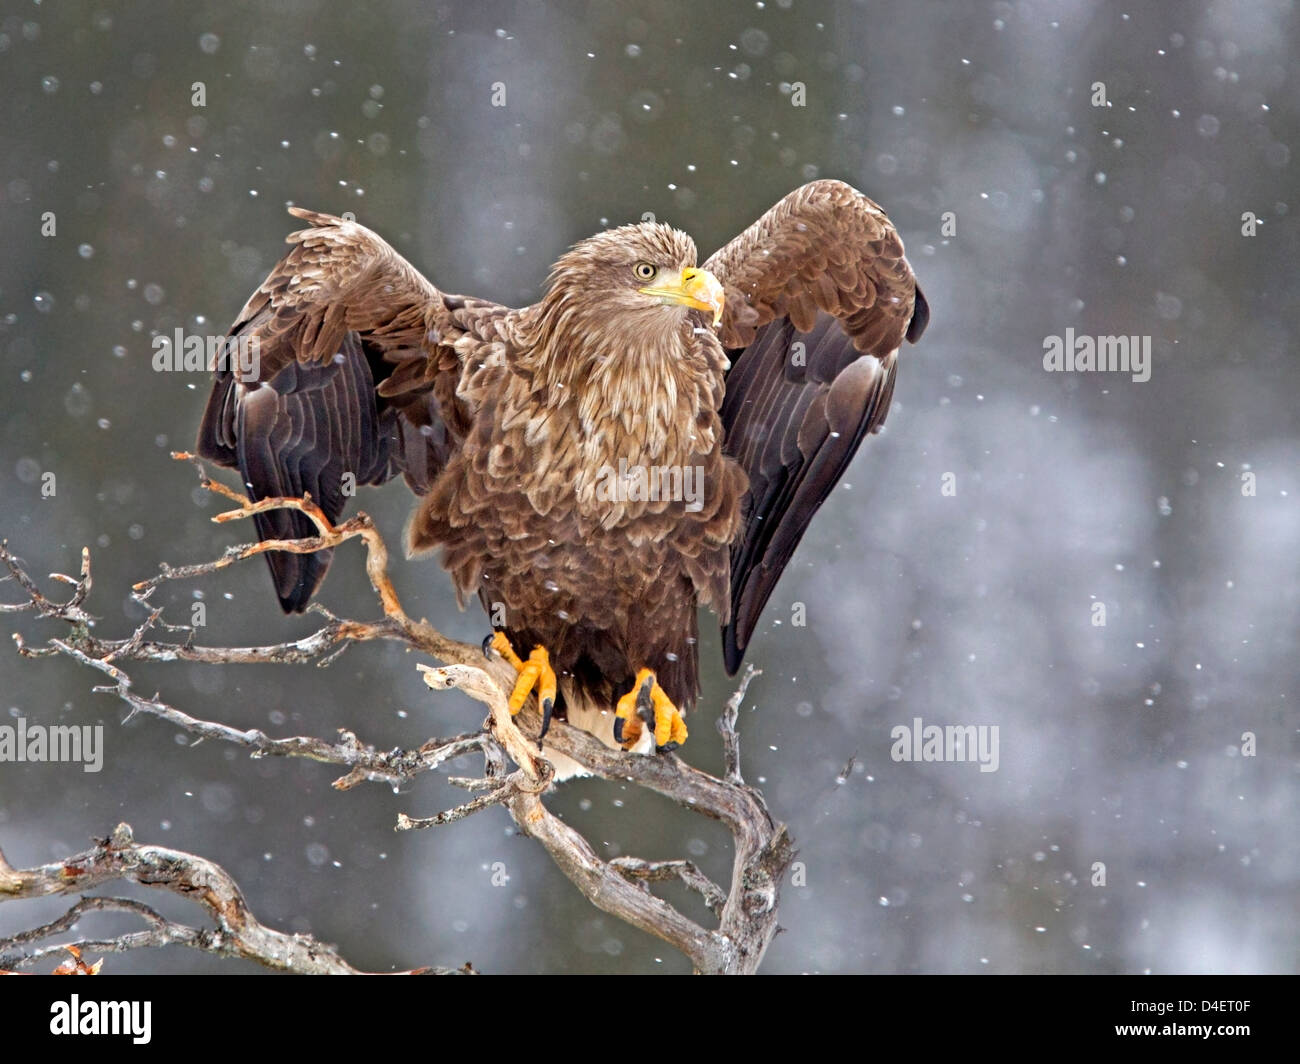 White-tailed sea eagle wings raised in snow storm - Stock Image